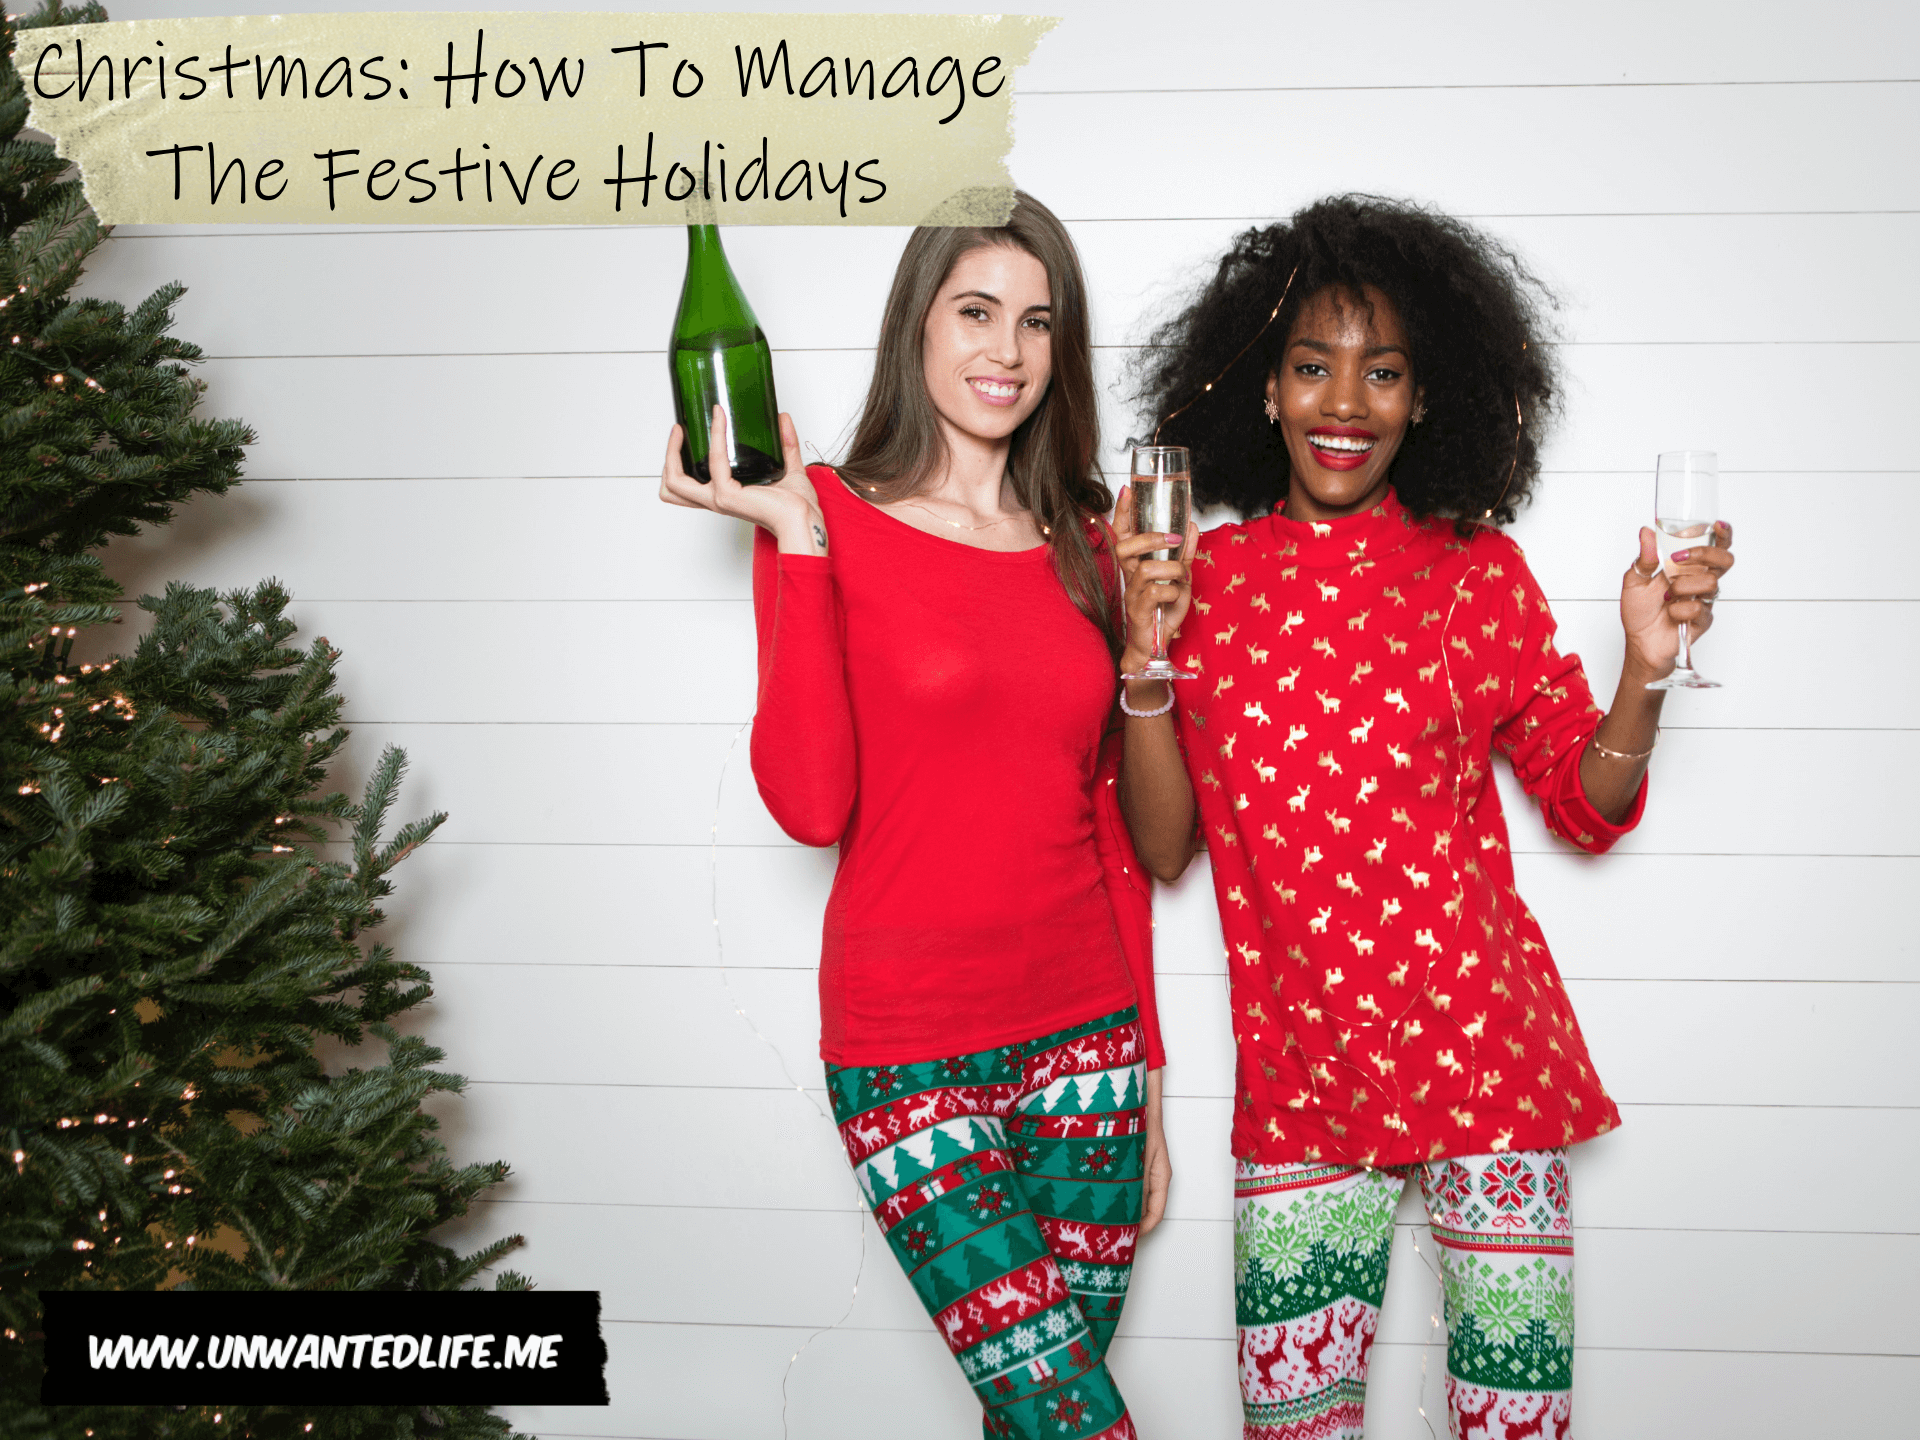 A photo of a black woman and a white woman drinking and celebrating Christmas to represent - Christmas: How To Manage The Festive Holidays